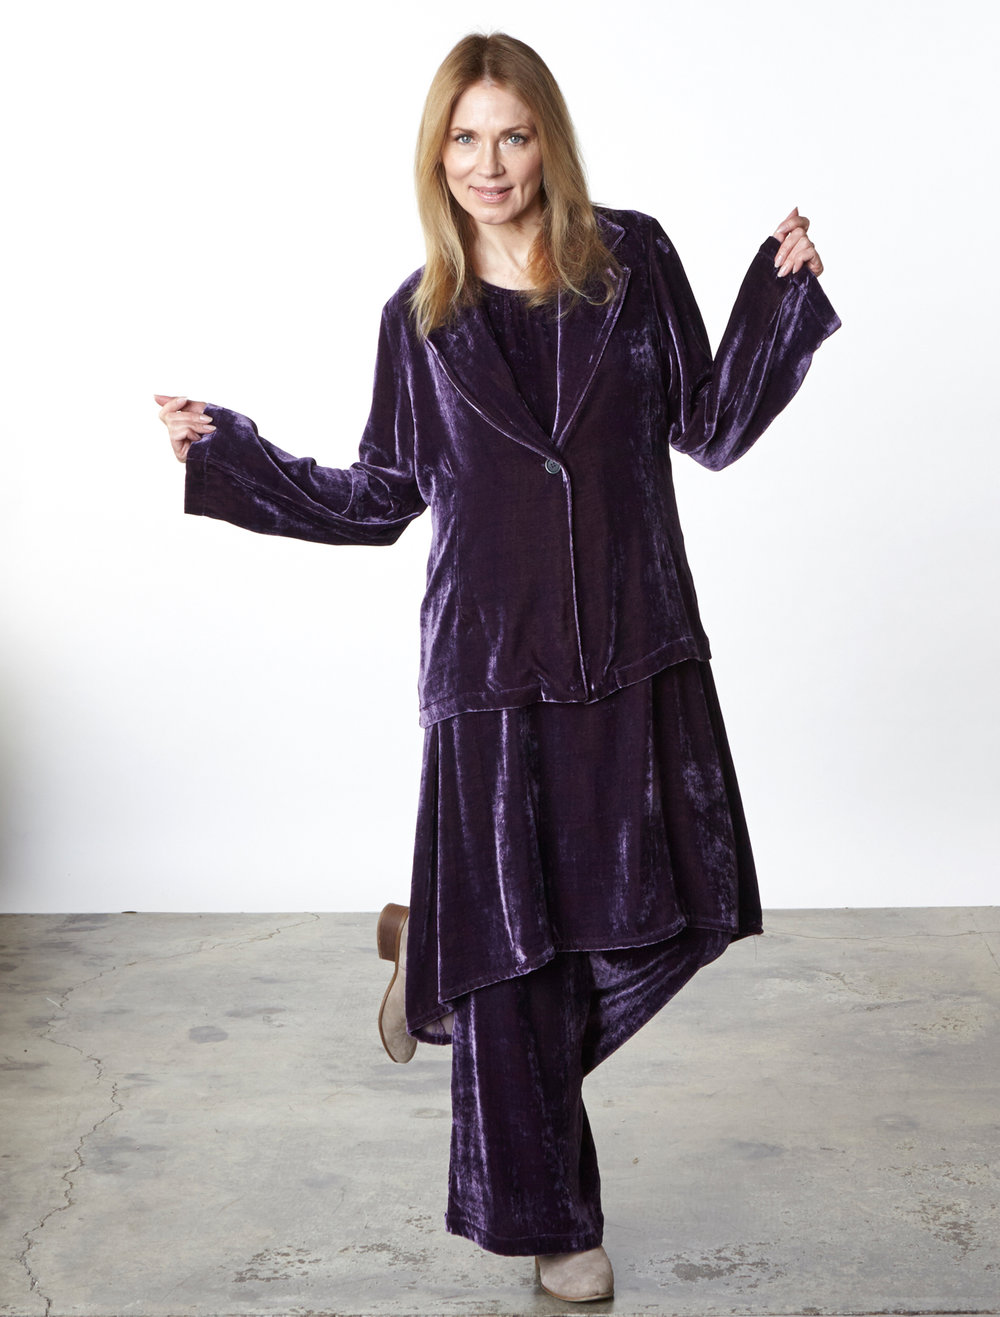 Alicia Jacket, Louie Dress, Long Full Pant in Purple Italian Viscose/Silk Velvet